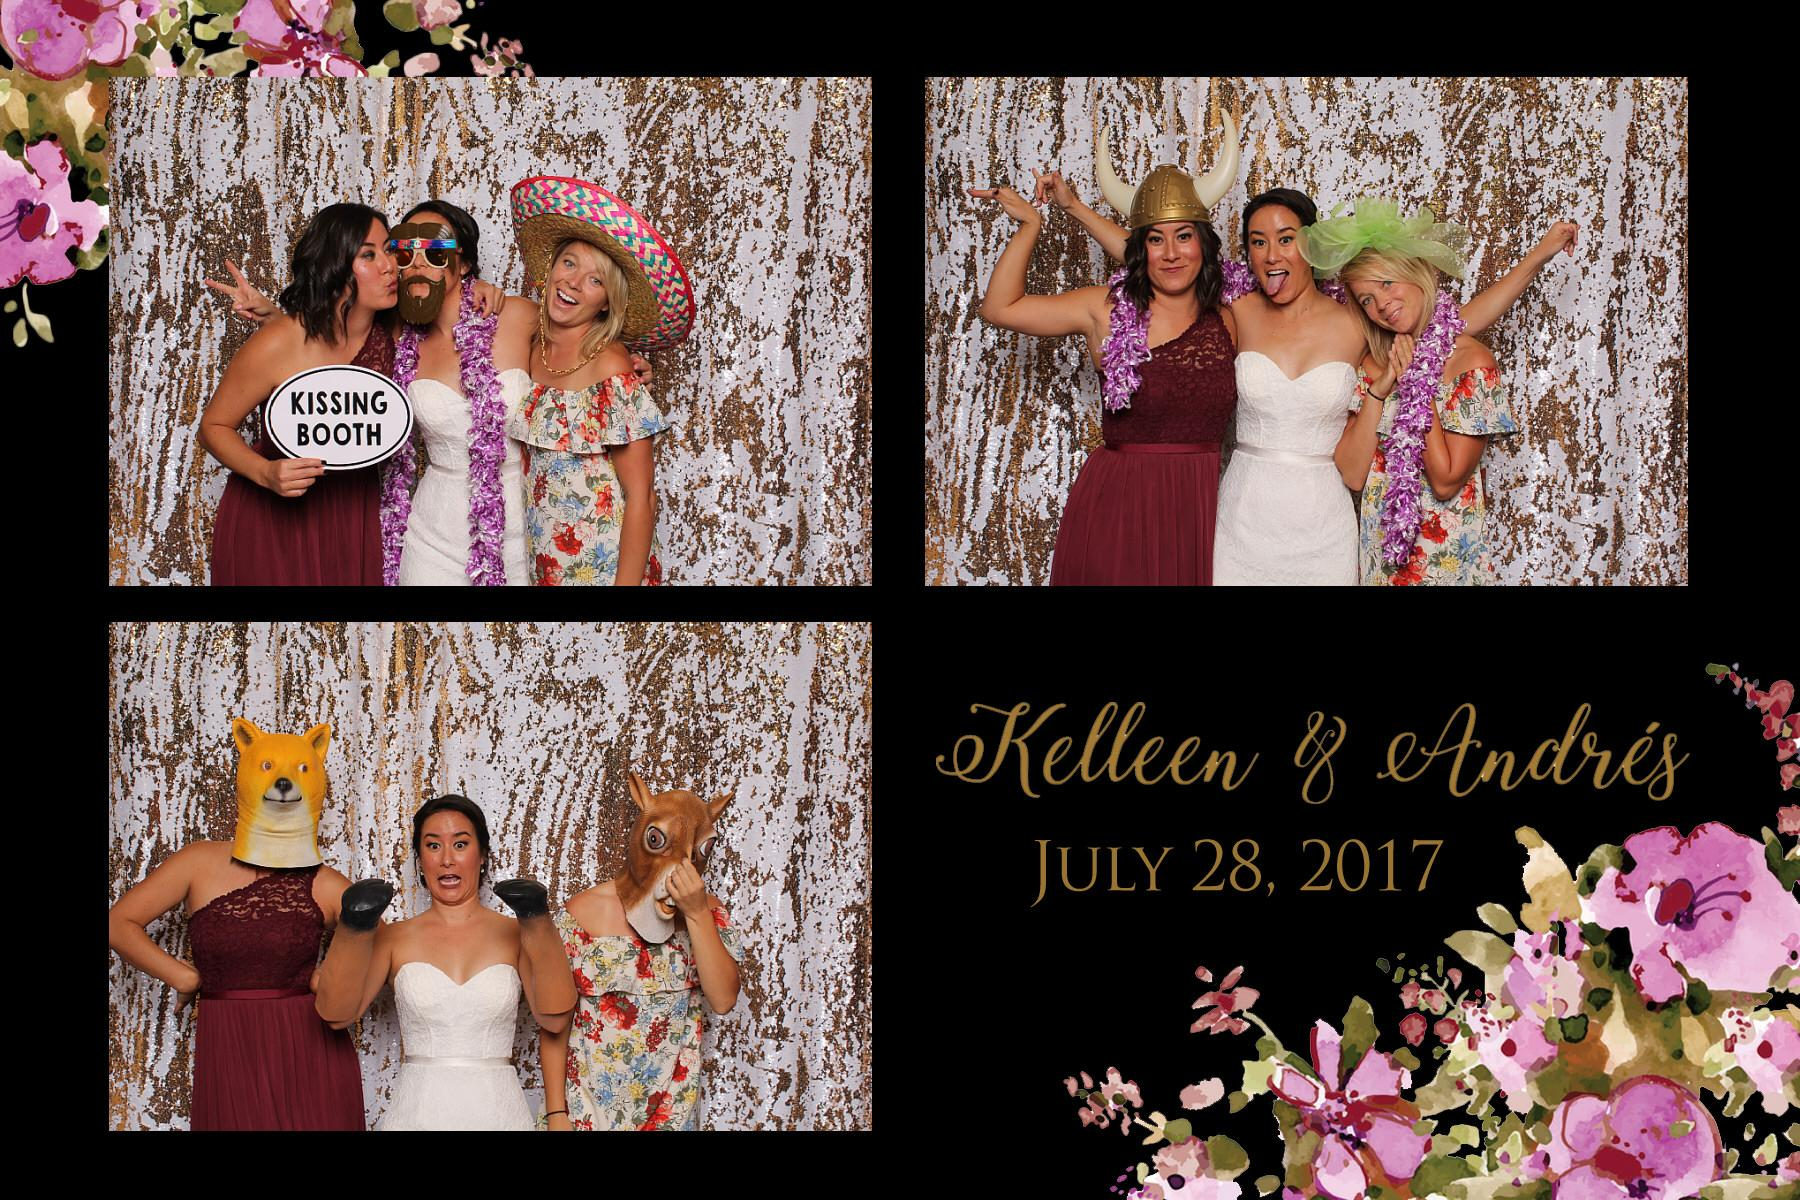 Photo booth, Photobooth, Gif Booth, Hashtag Printer, Grand Junction, Delta, Montrose, Moab, Crested Butte, Gunnison, Rifle, Glenwood Springs, for Weddings, Events, High School Dances